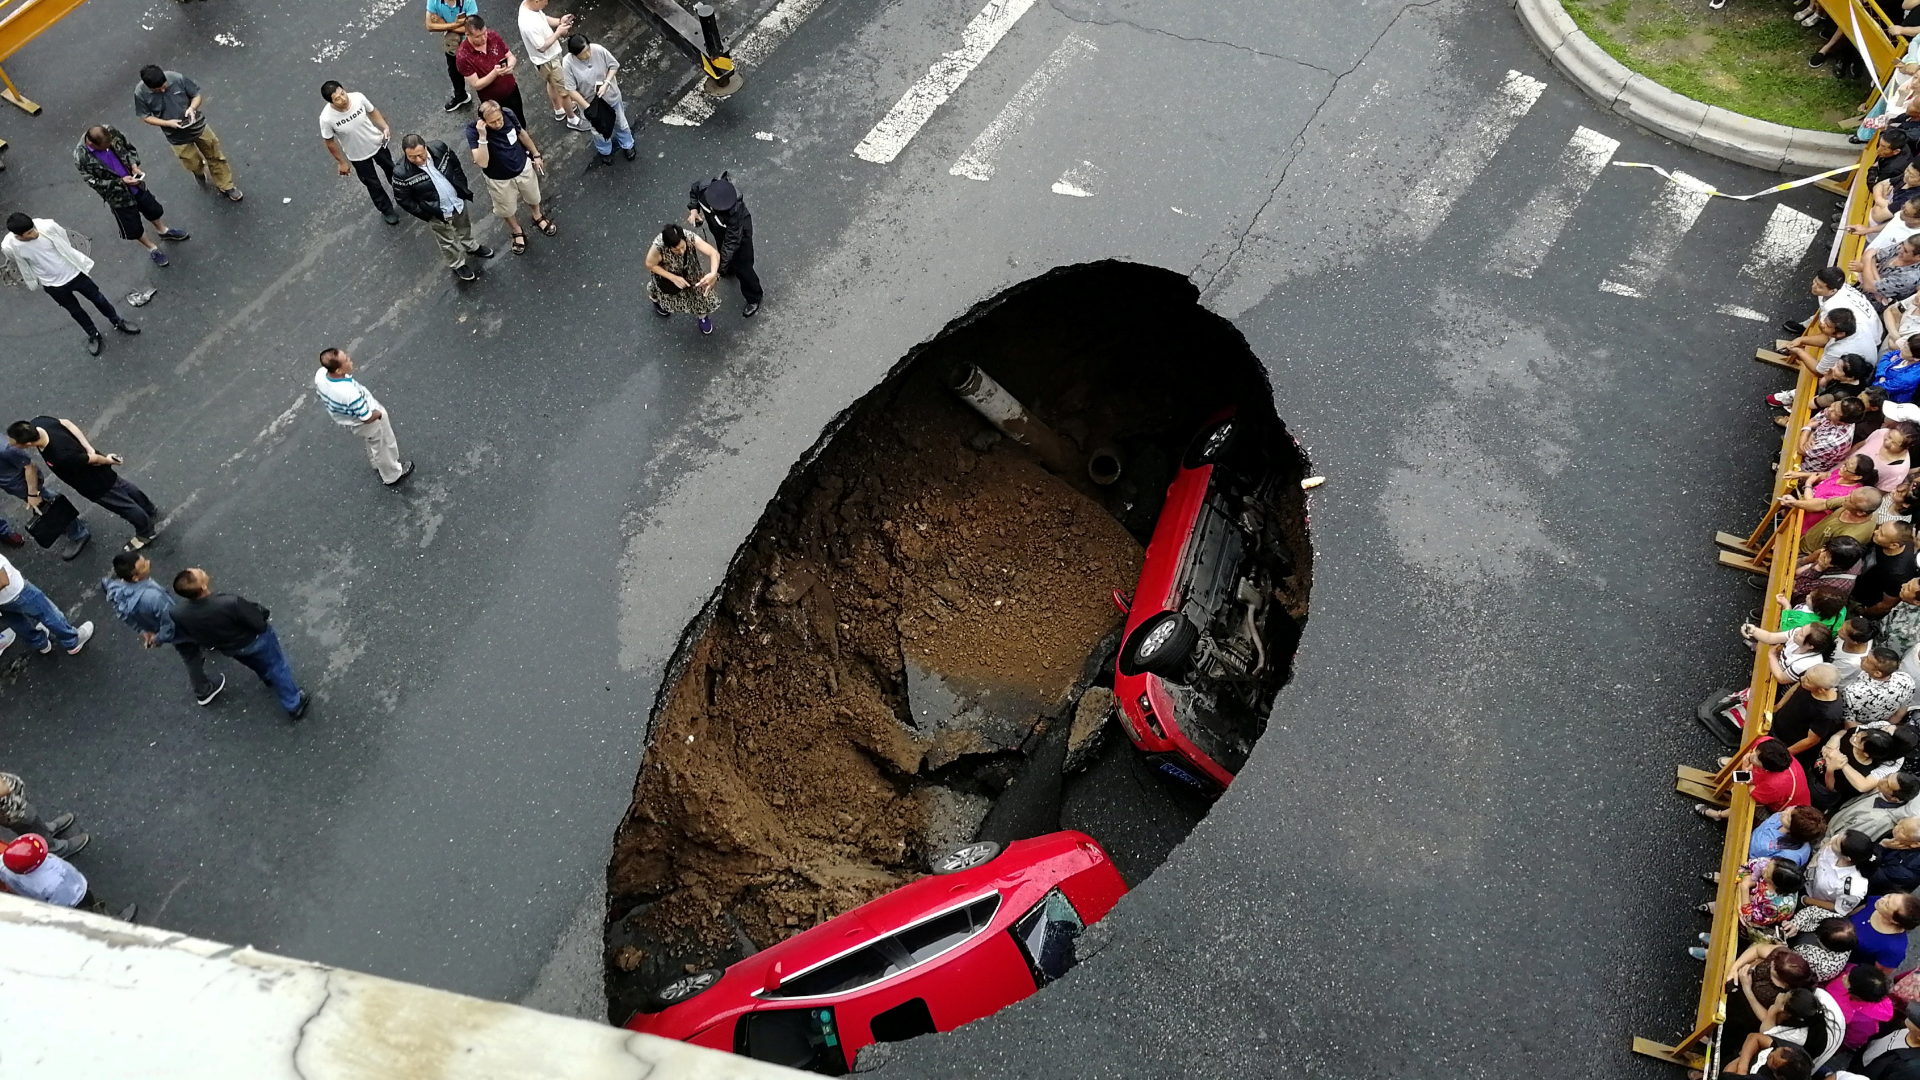 George Washington Parkway's northbound lanes to be closed through the weekend after sinkhole forms